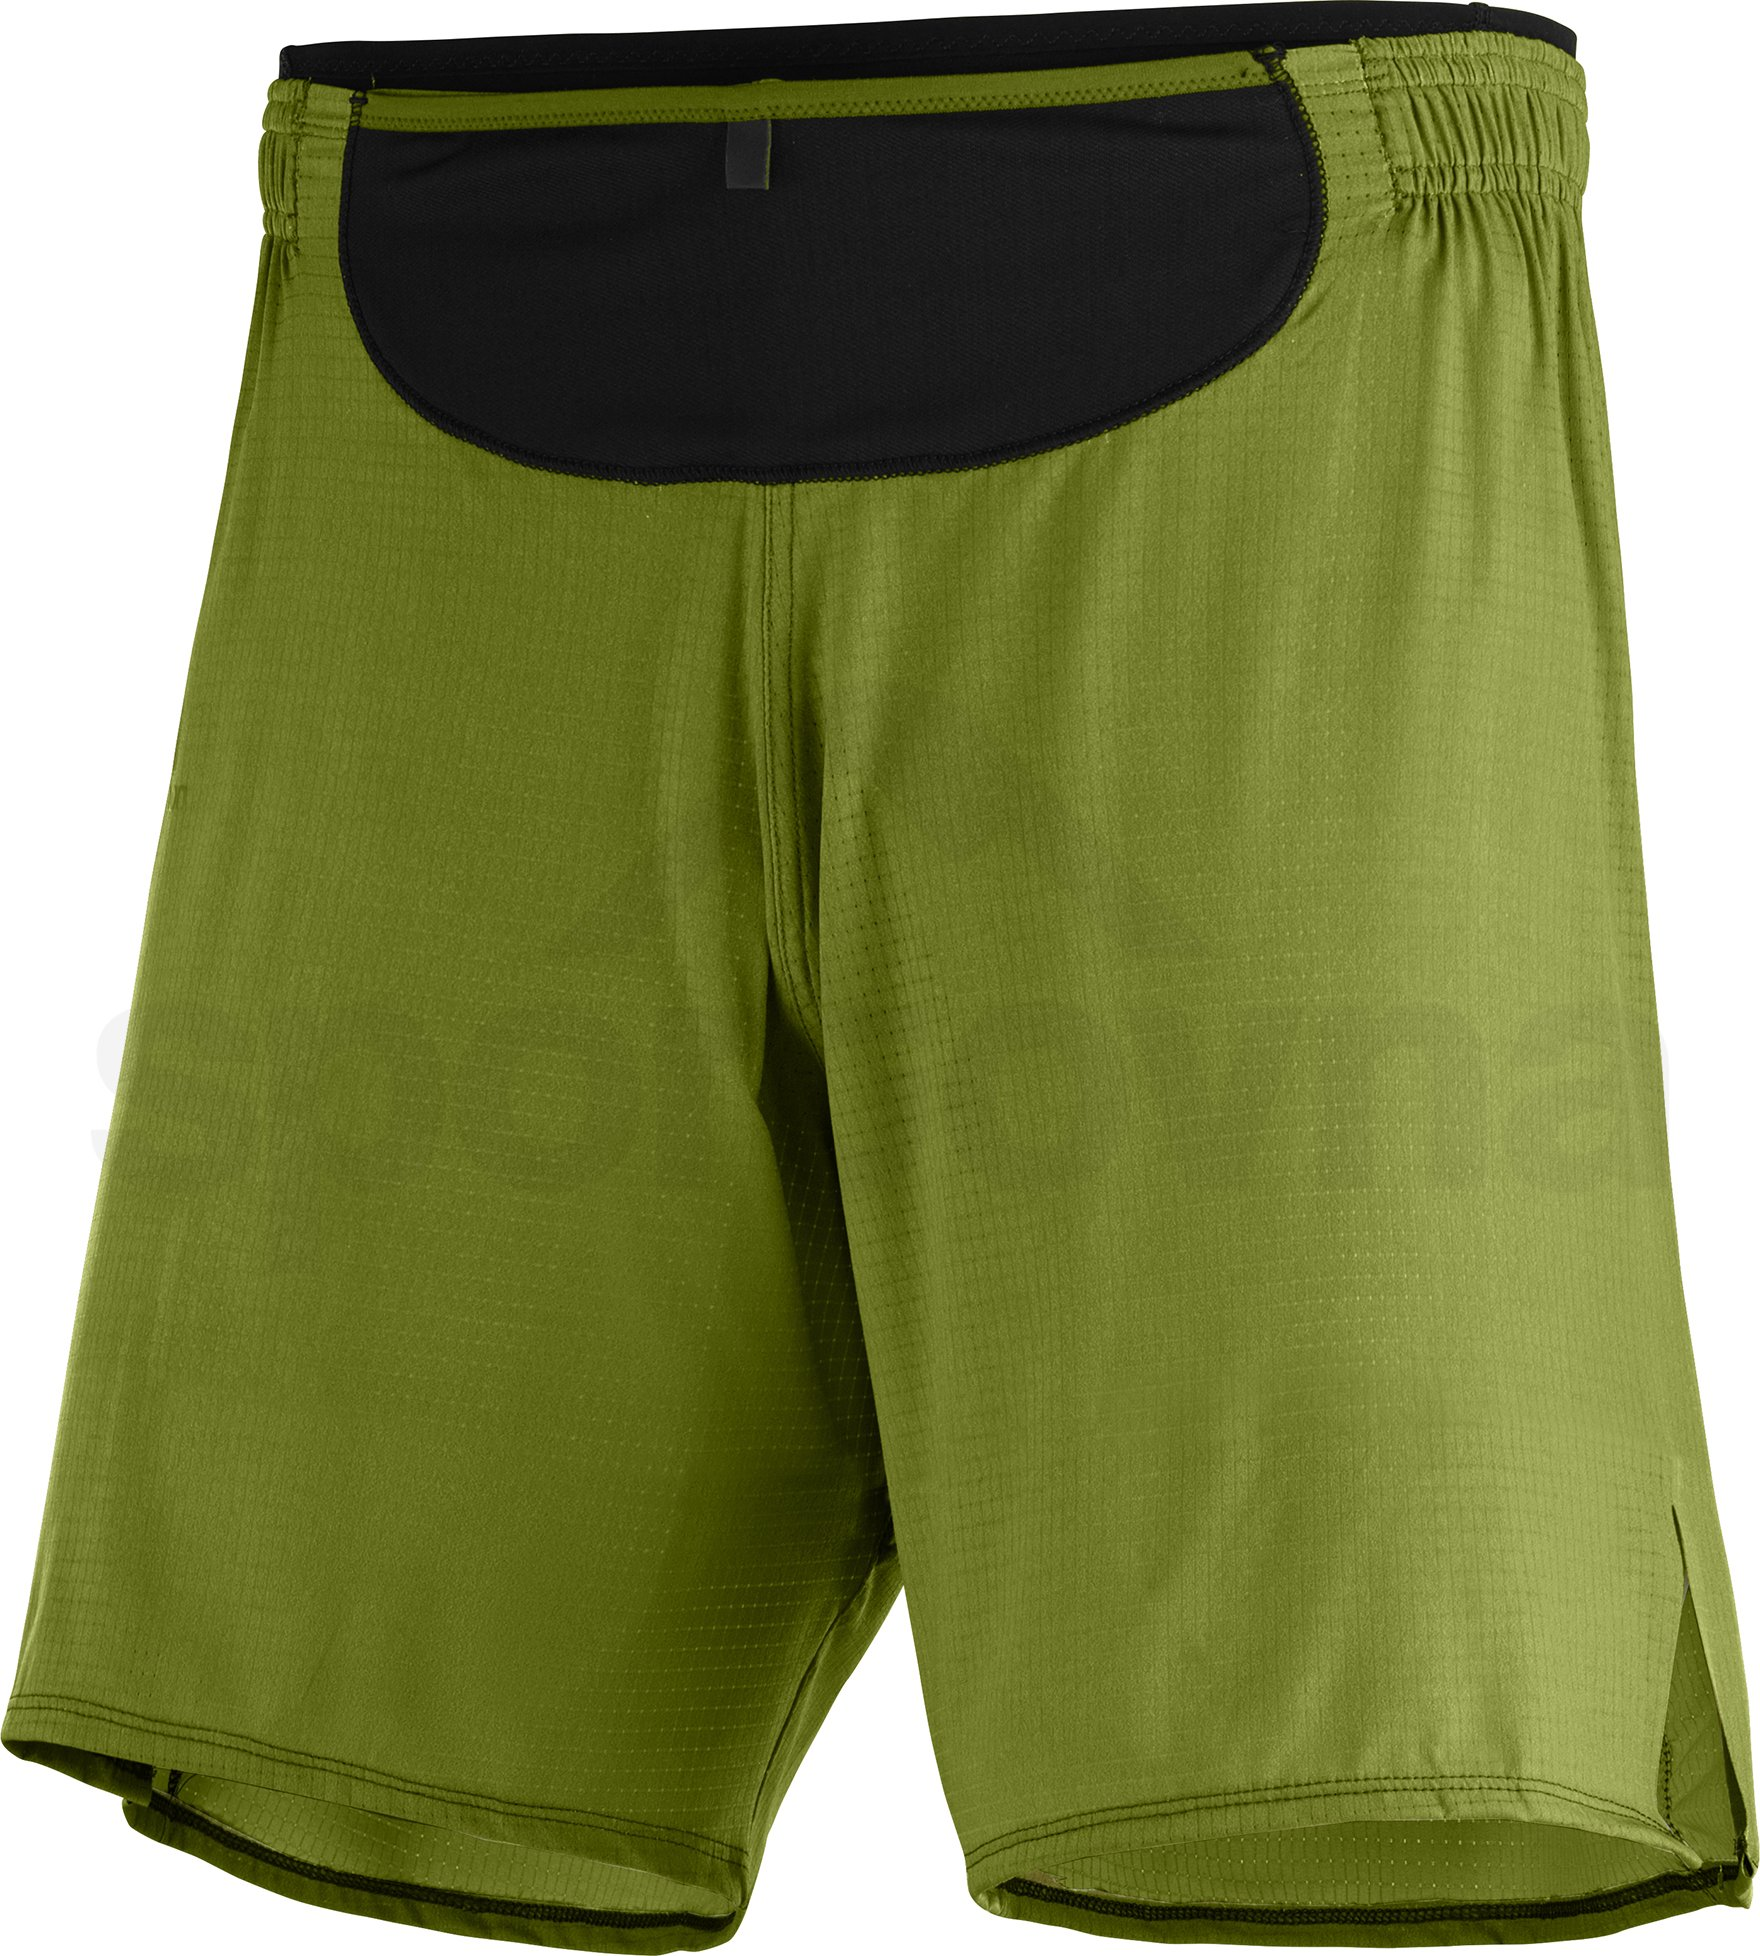 LC1045500_0_m_senseshort_avocado_run.jpg.originaln